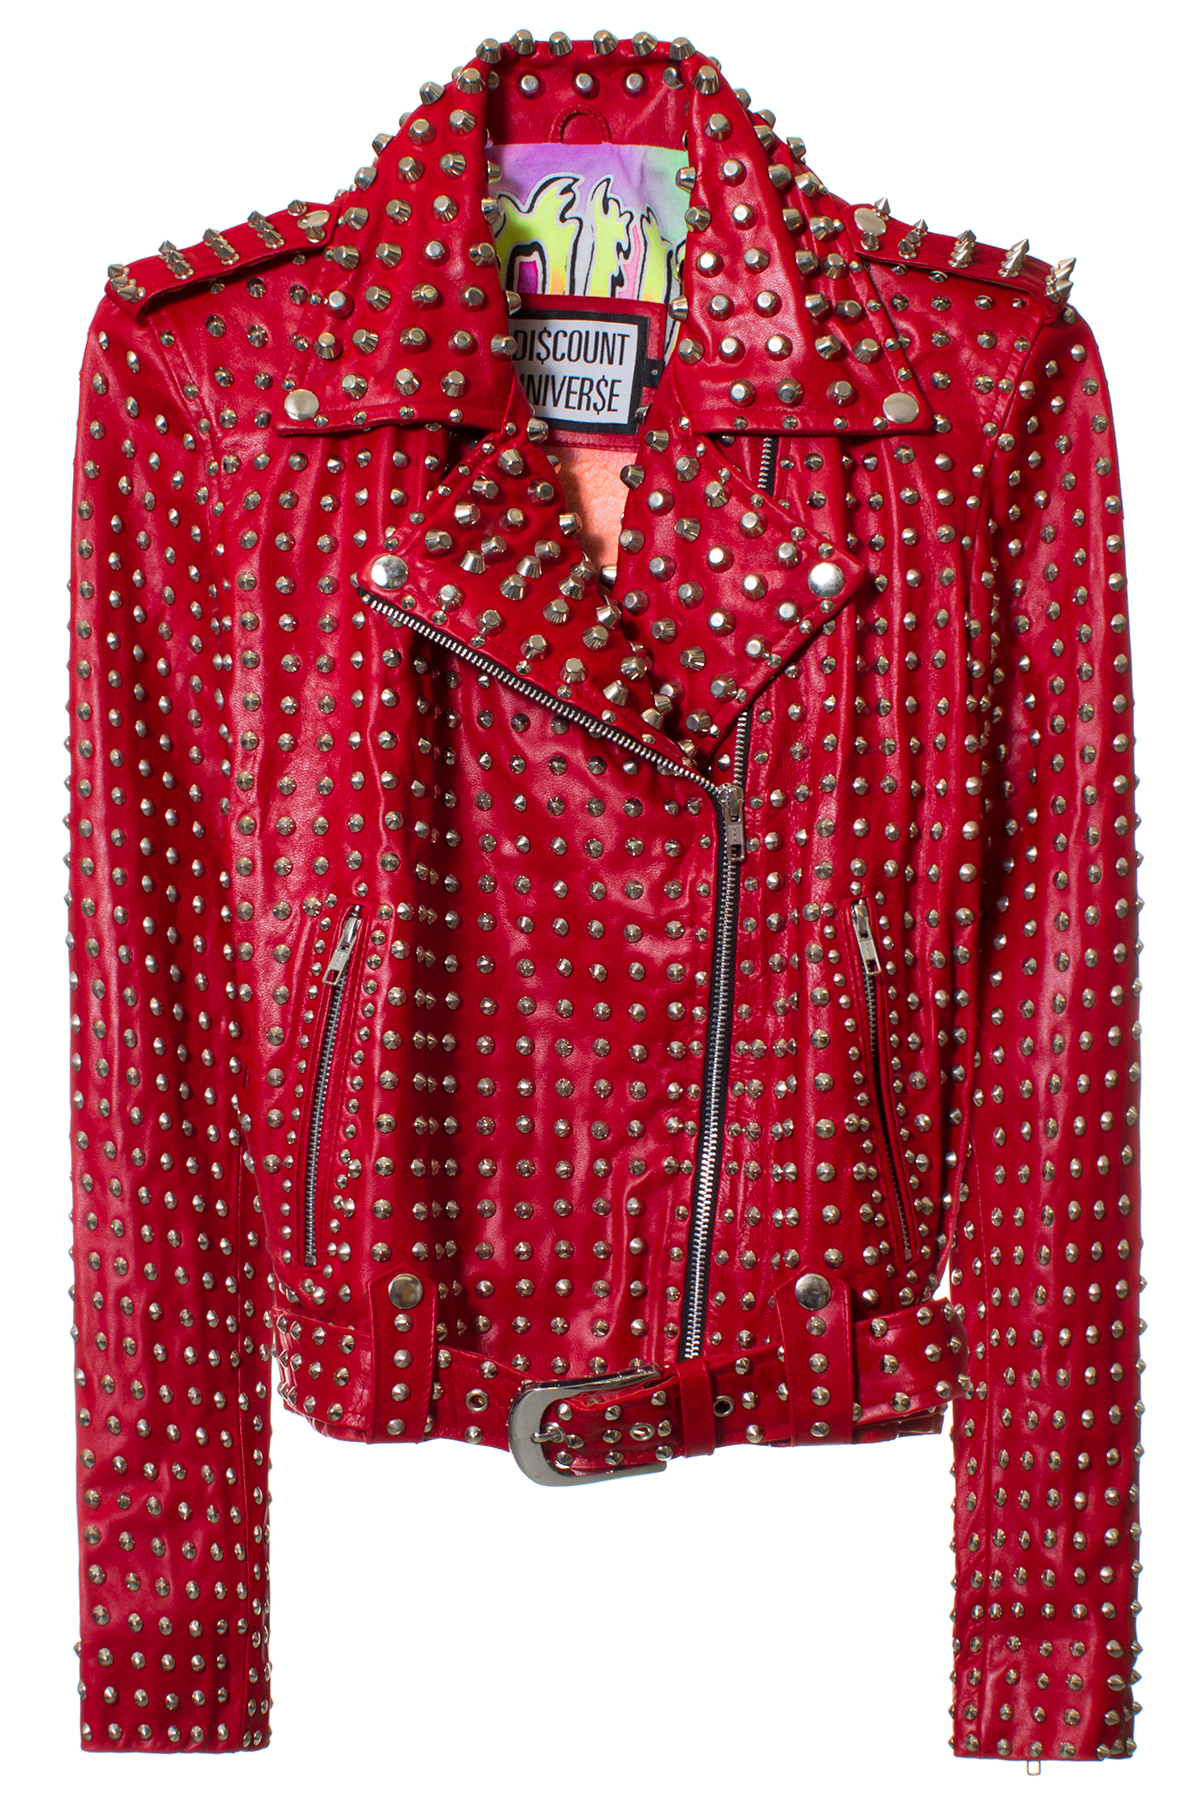 DISCOUNT UNIVERSE MOTO STUDDED JACKET